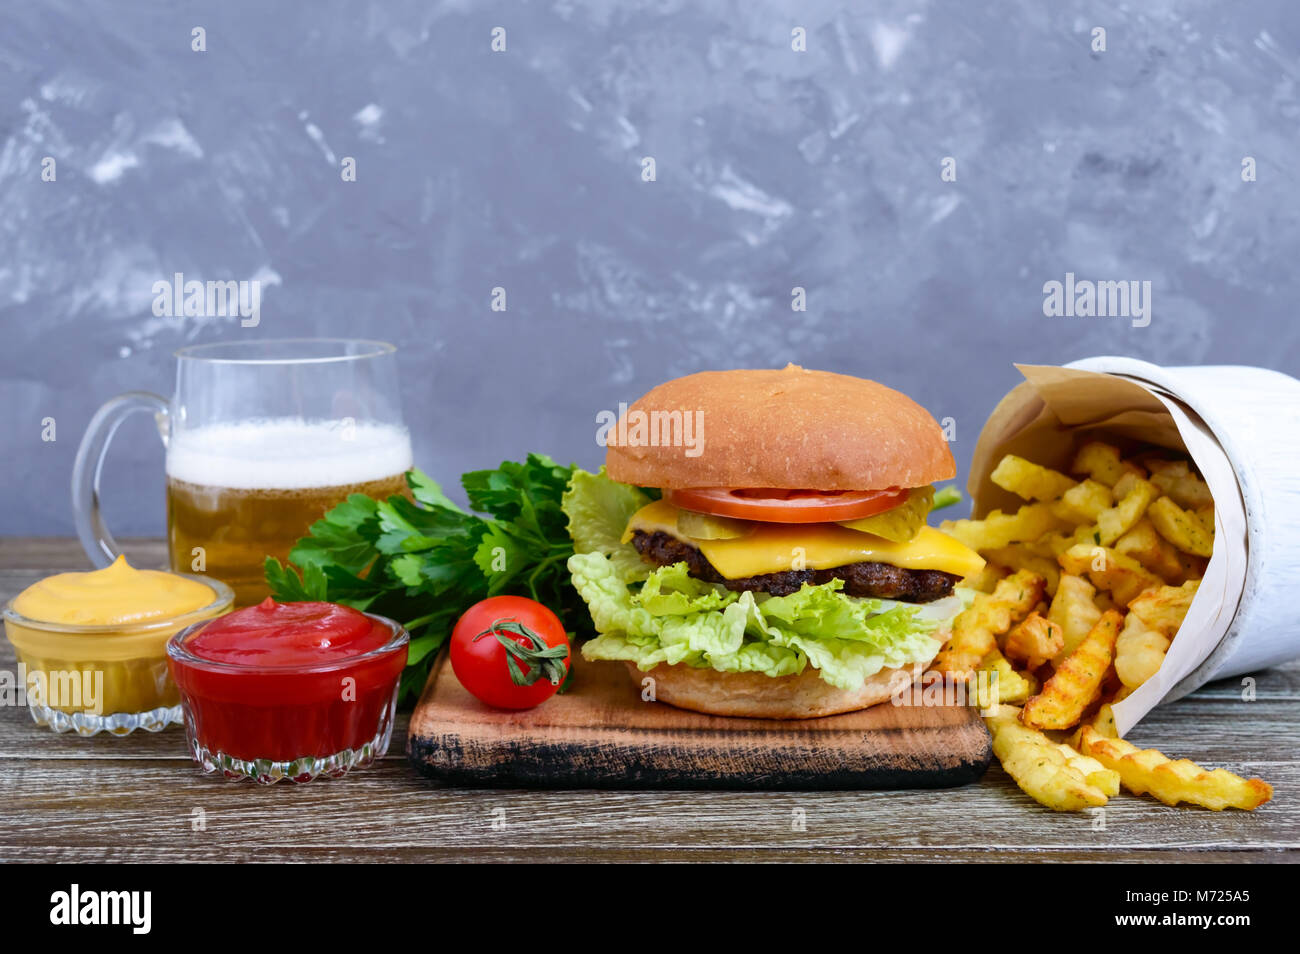 Juicy burger, french fries, sauces, beer  on a wooden background. Fast food. Street food. - Stock Image